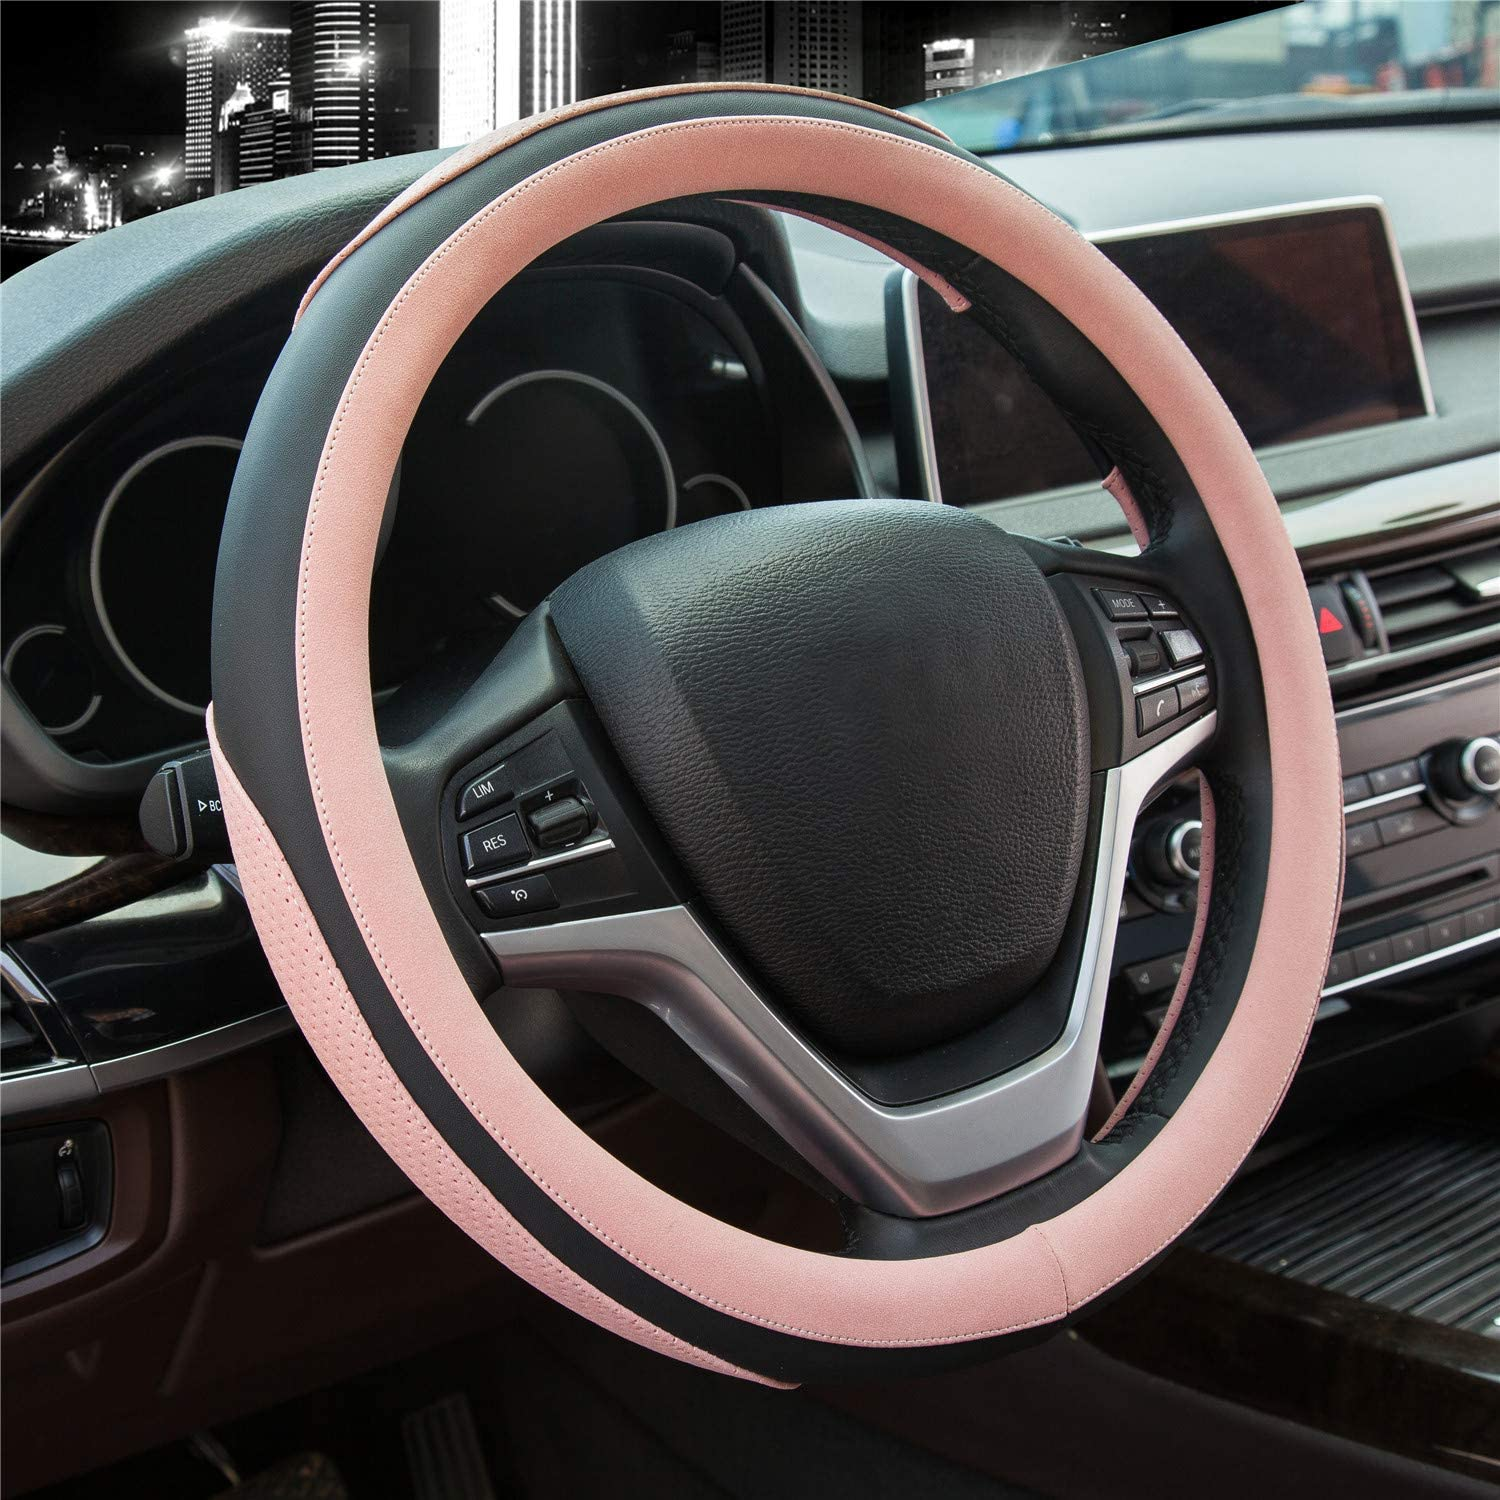 Pink Didida Steering Wheel Covers Soft Matte Microfiber Leather Non-Slip Sweat-Absorbent for Women Men Universal 15 Inch Car Decoration